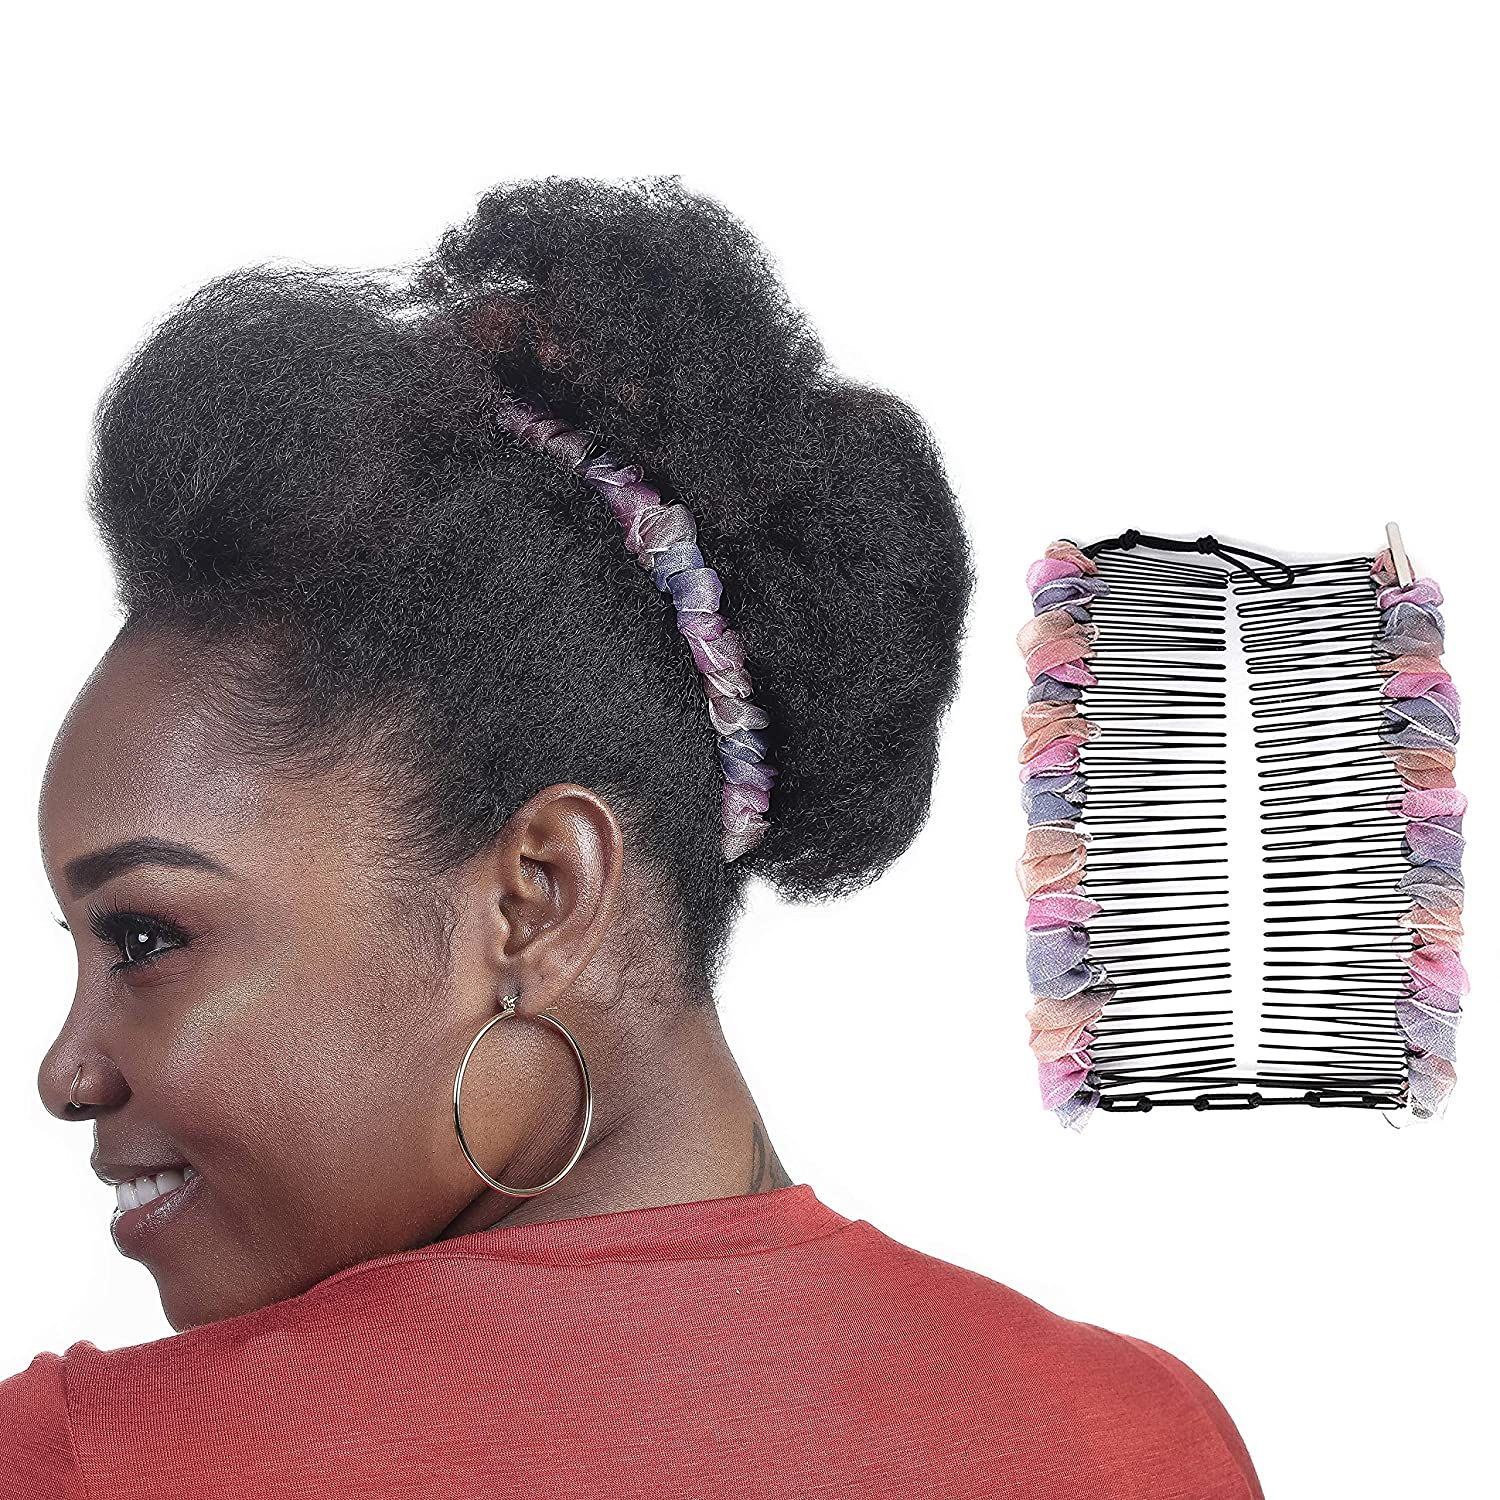 Original Stretch Banana Hair Clip for Thick Curly Hair, Comfy Adjustable  Combs Make Great Hair Accessories for Kinky, Curly Type 15 Hair, Faux Hawks,  ...